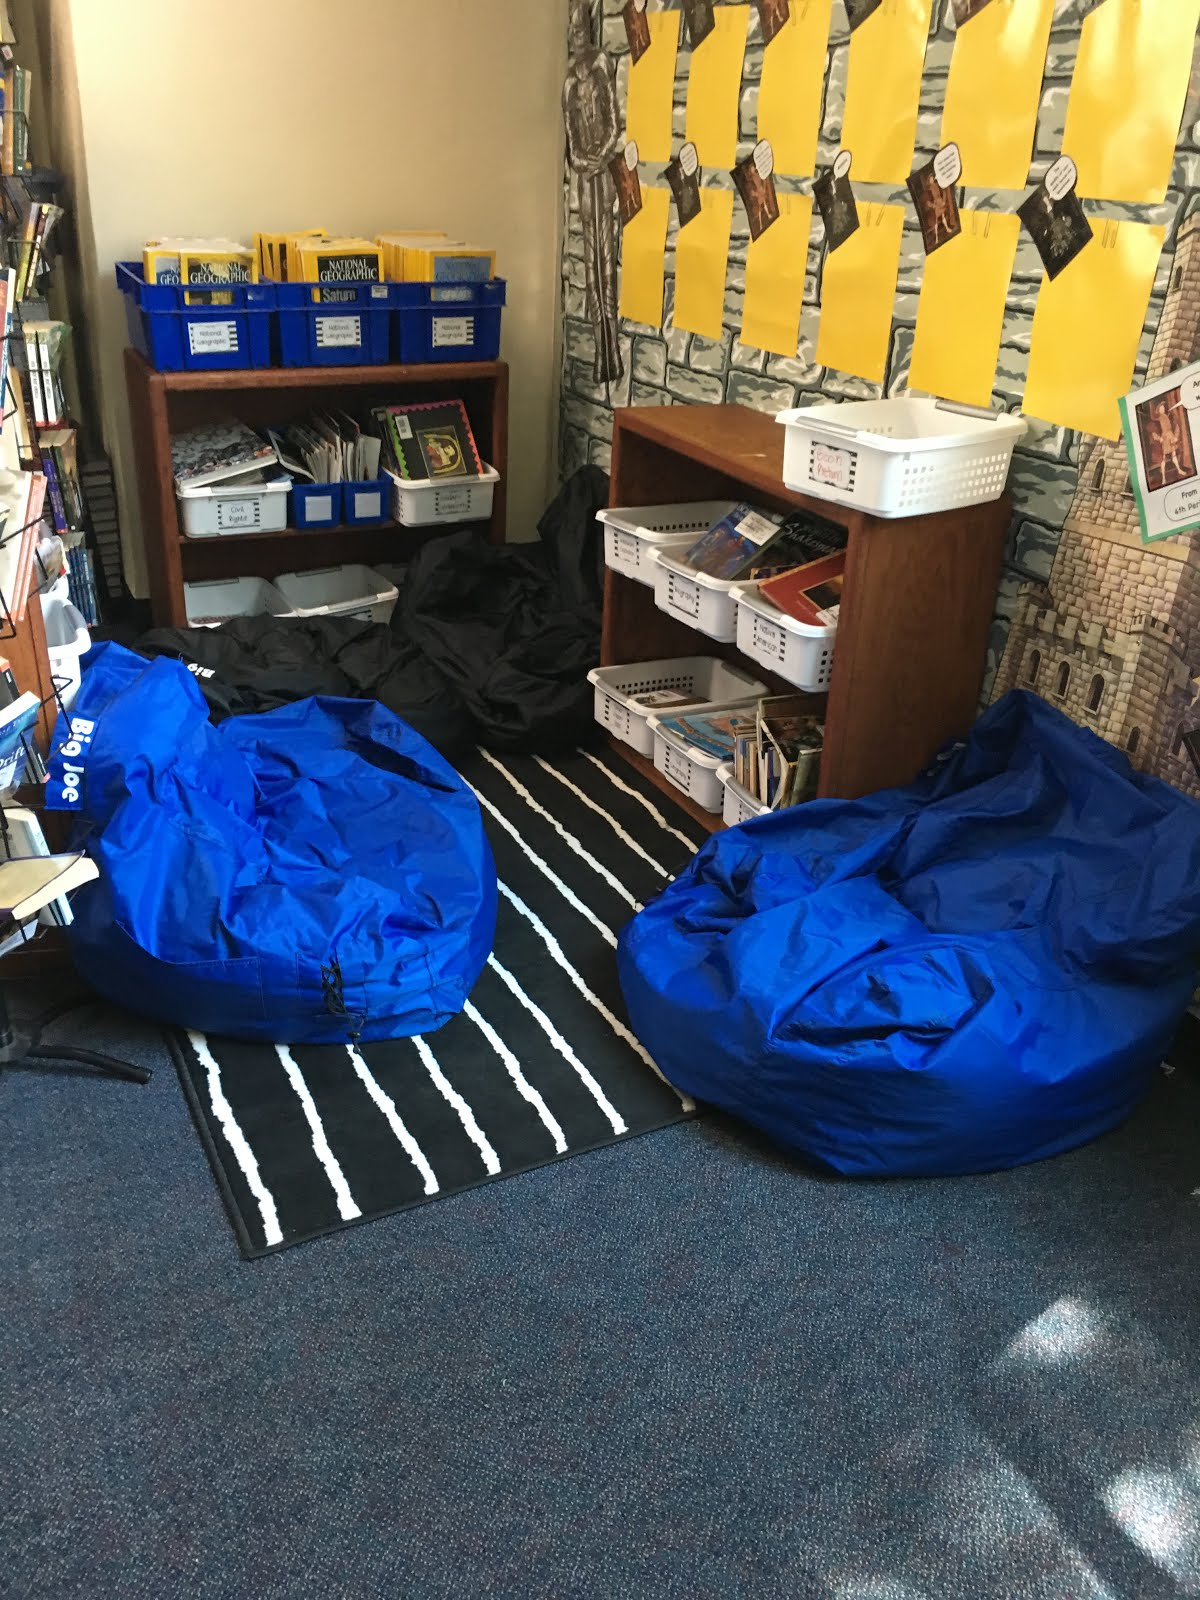 Bean Bag Chairs For Kids Ikea Chair Cover Rental Tampa Middle School Mob: Flexible Seating In